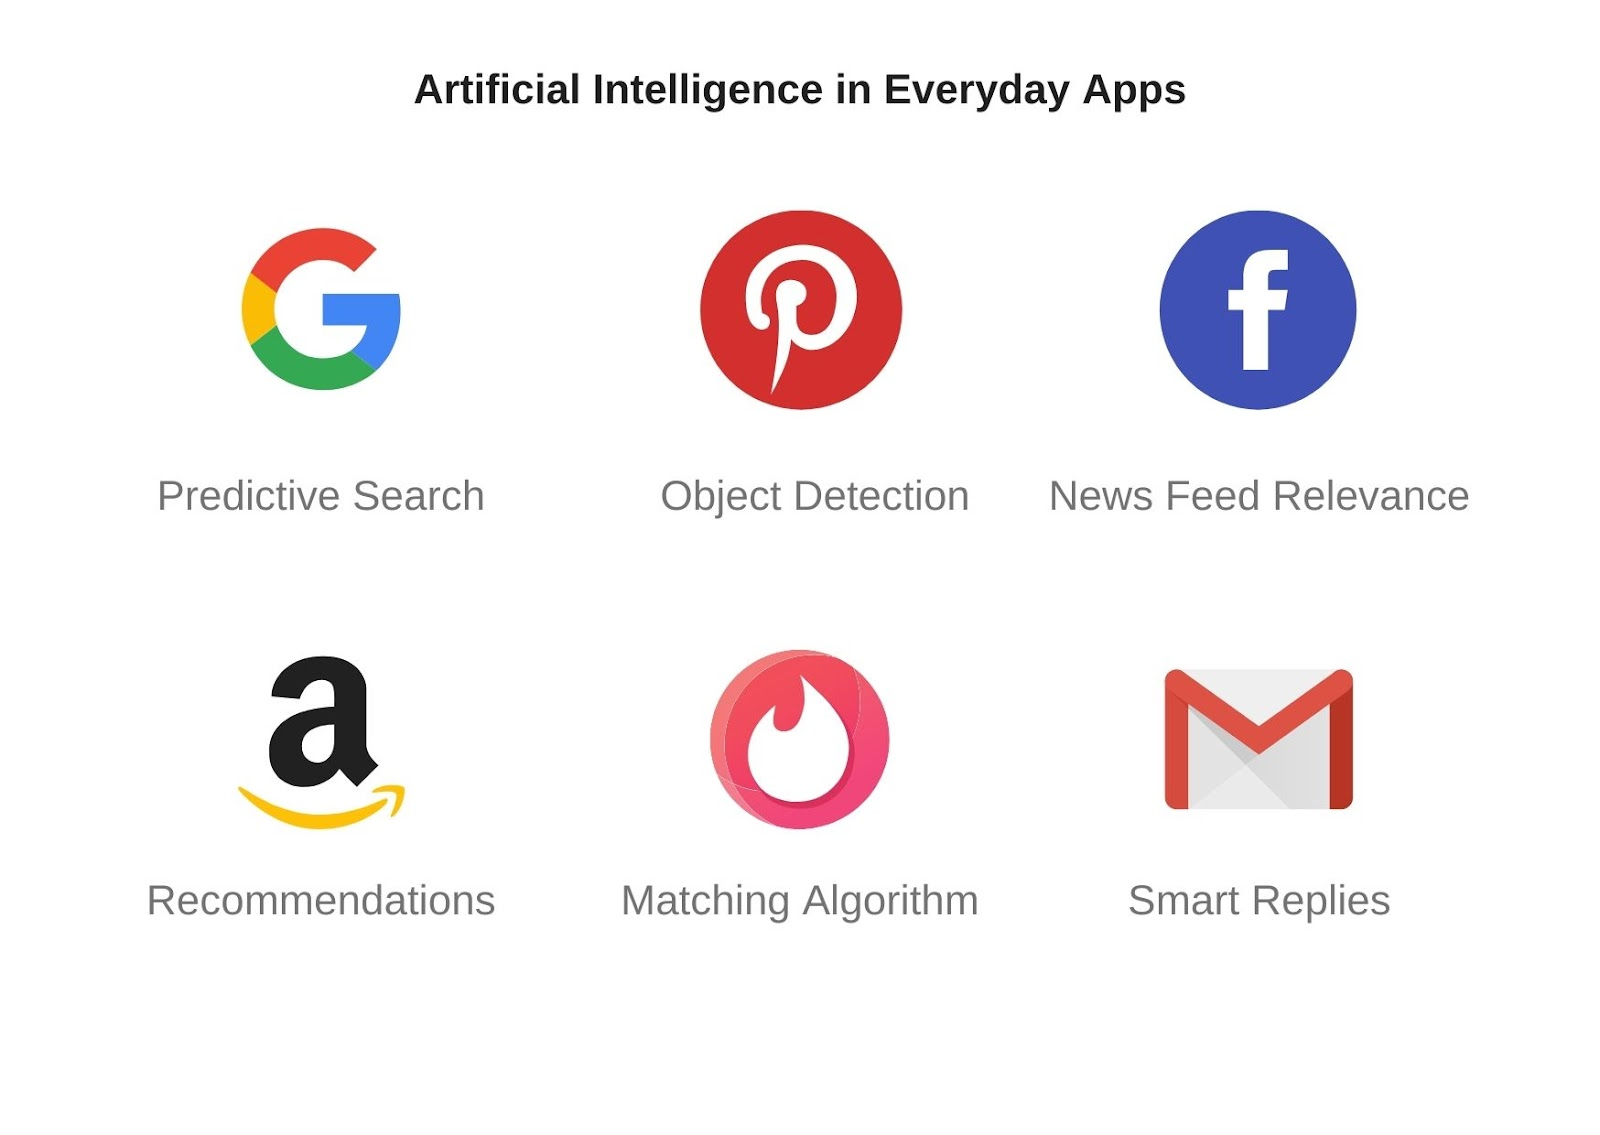 AI usage in different mobile apps